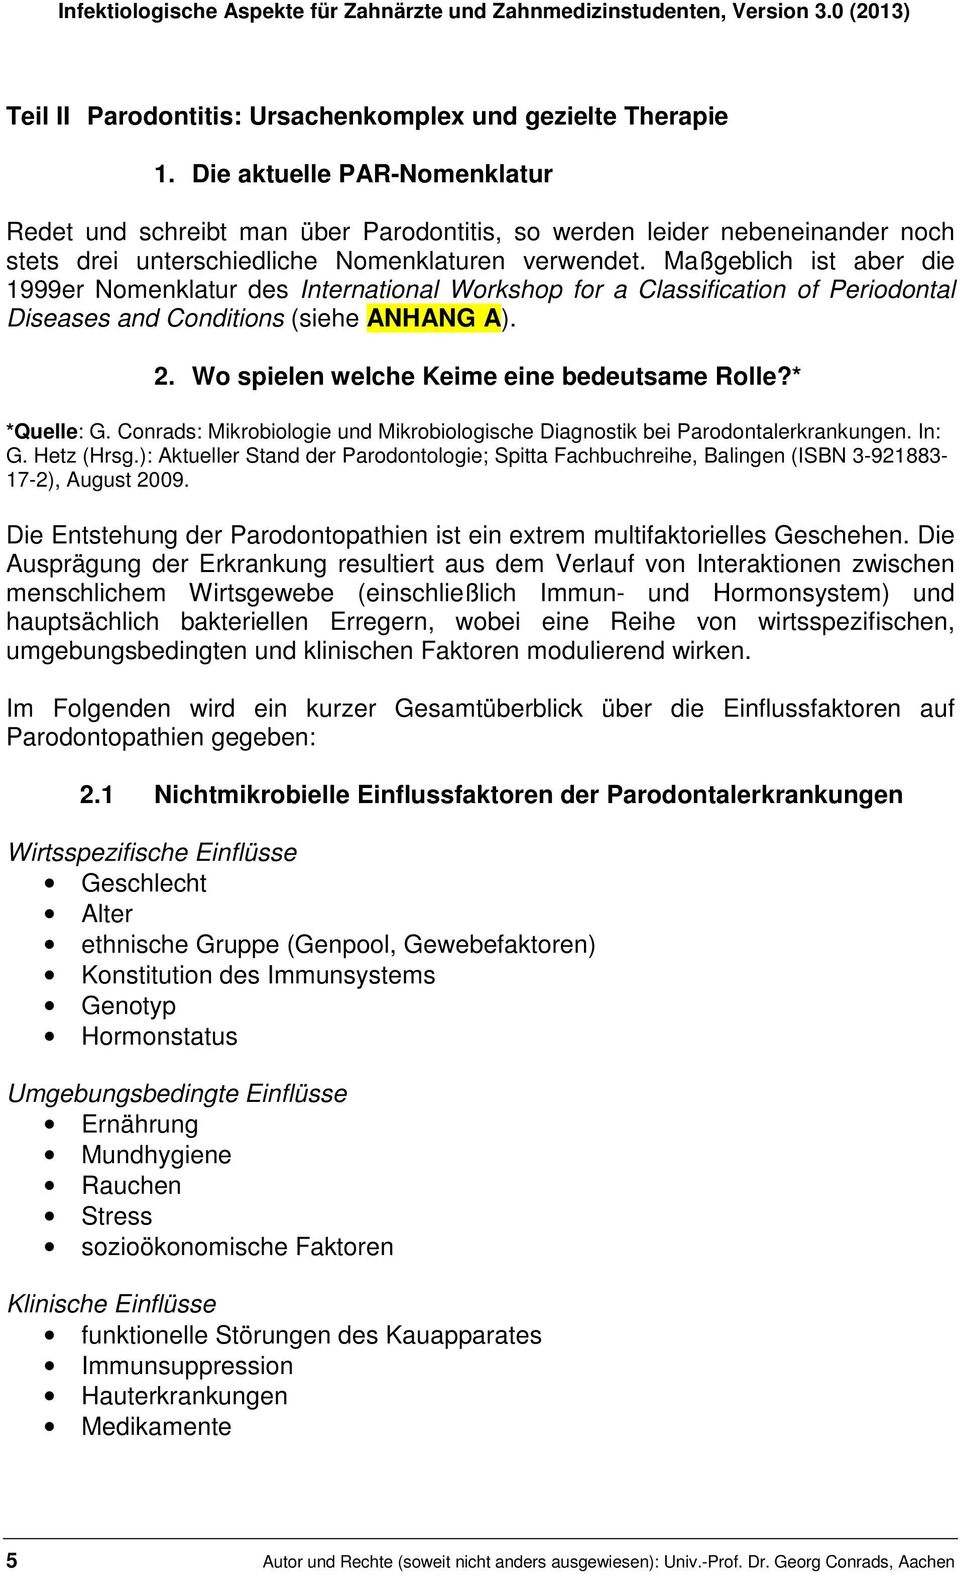 Maßgeblich ist aber die 1999er Nomenklatur des International Workshop for a Classification of Periodontal Diseases and Conditions (siehe ANHANG A). 2. Wo spielen welche Keime eine bedeutsame Rolle?